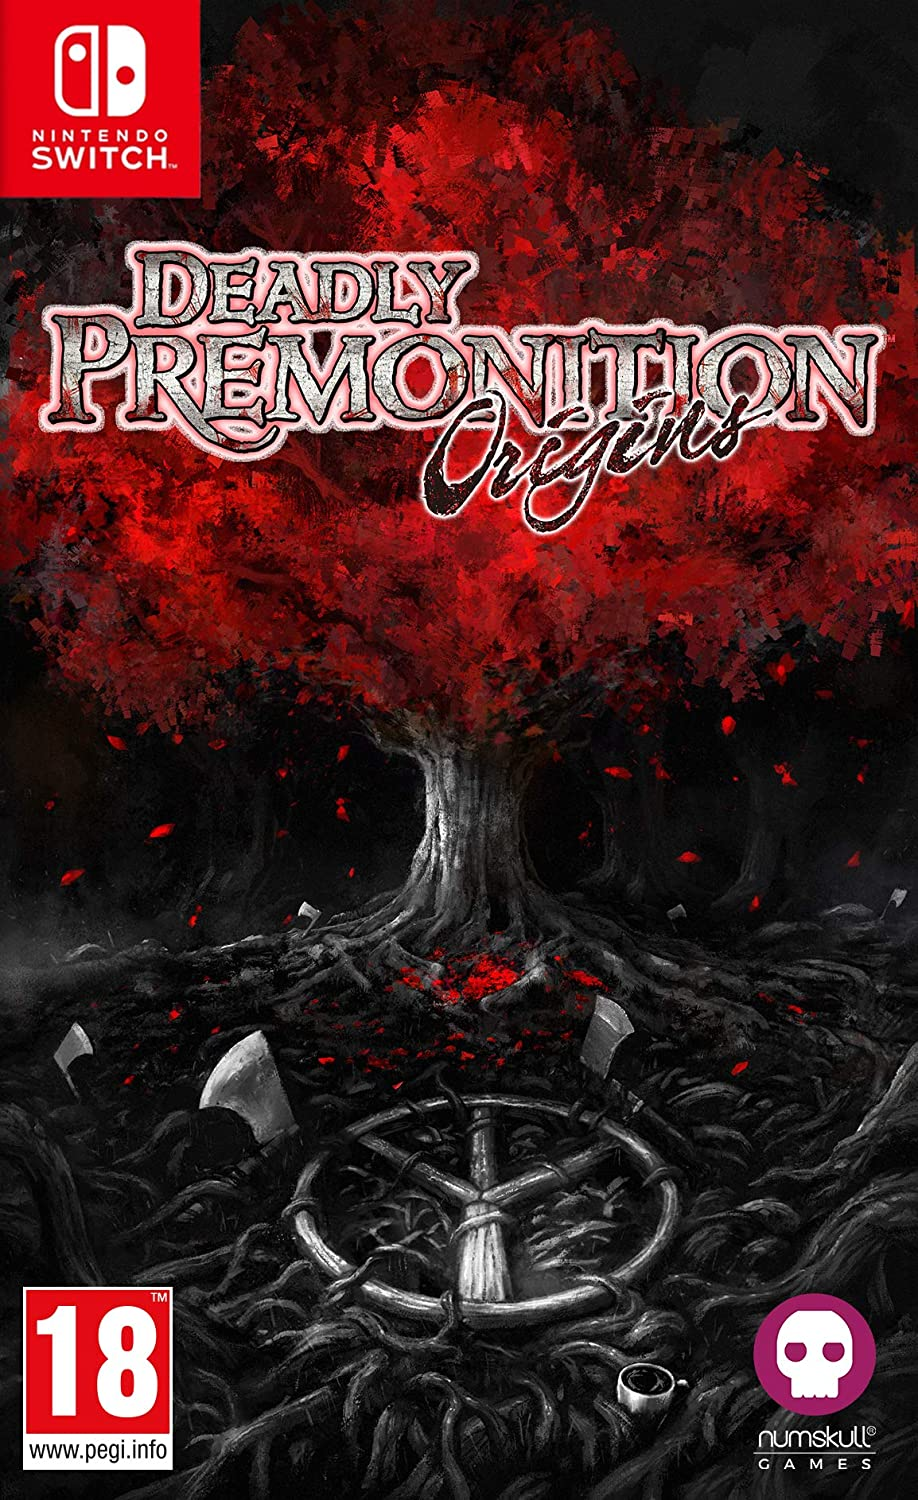 Deadly Premonition Origins Nintendo Switch: Amazon.es: Videojuegos